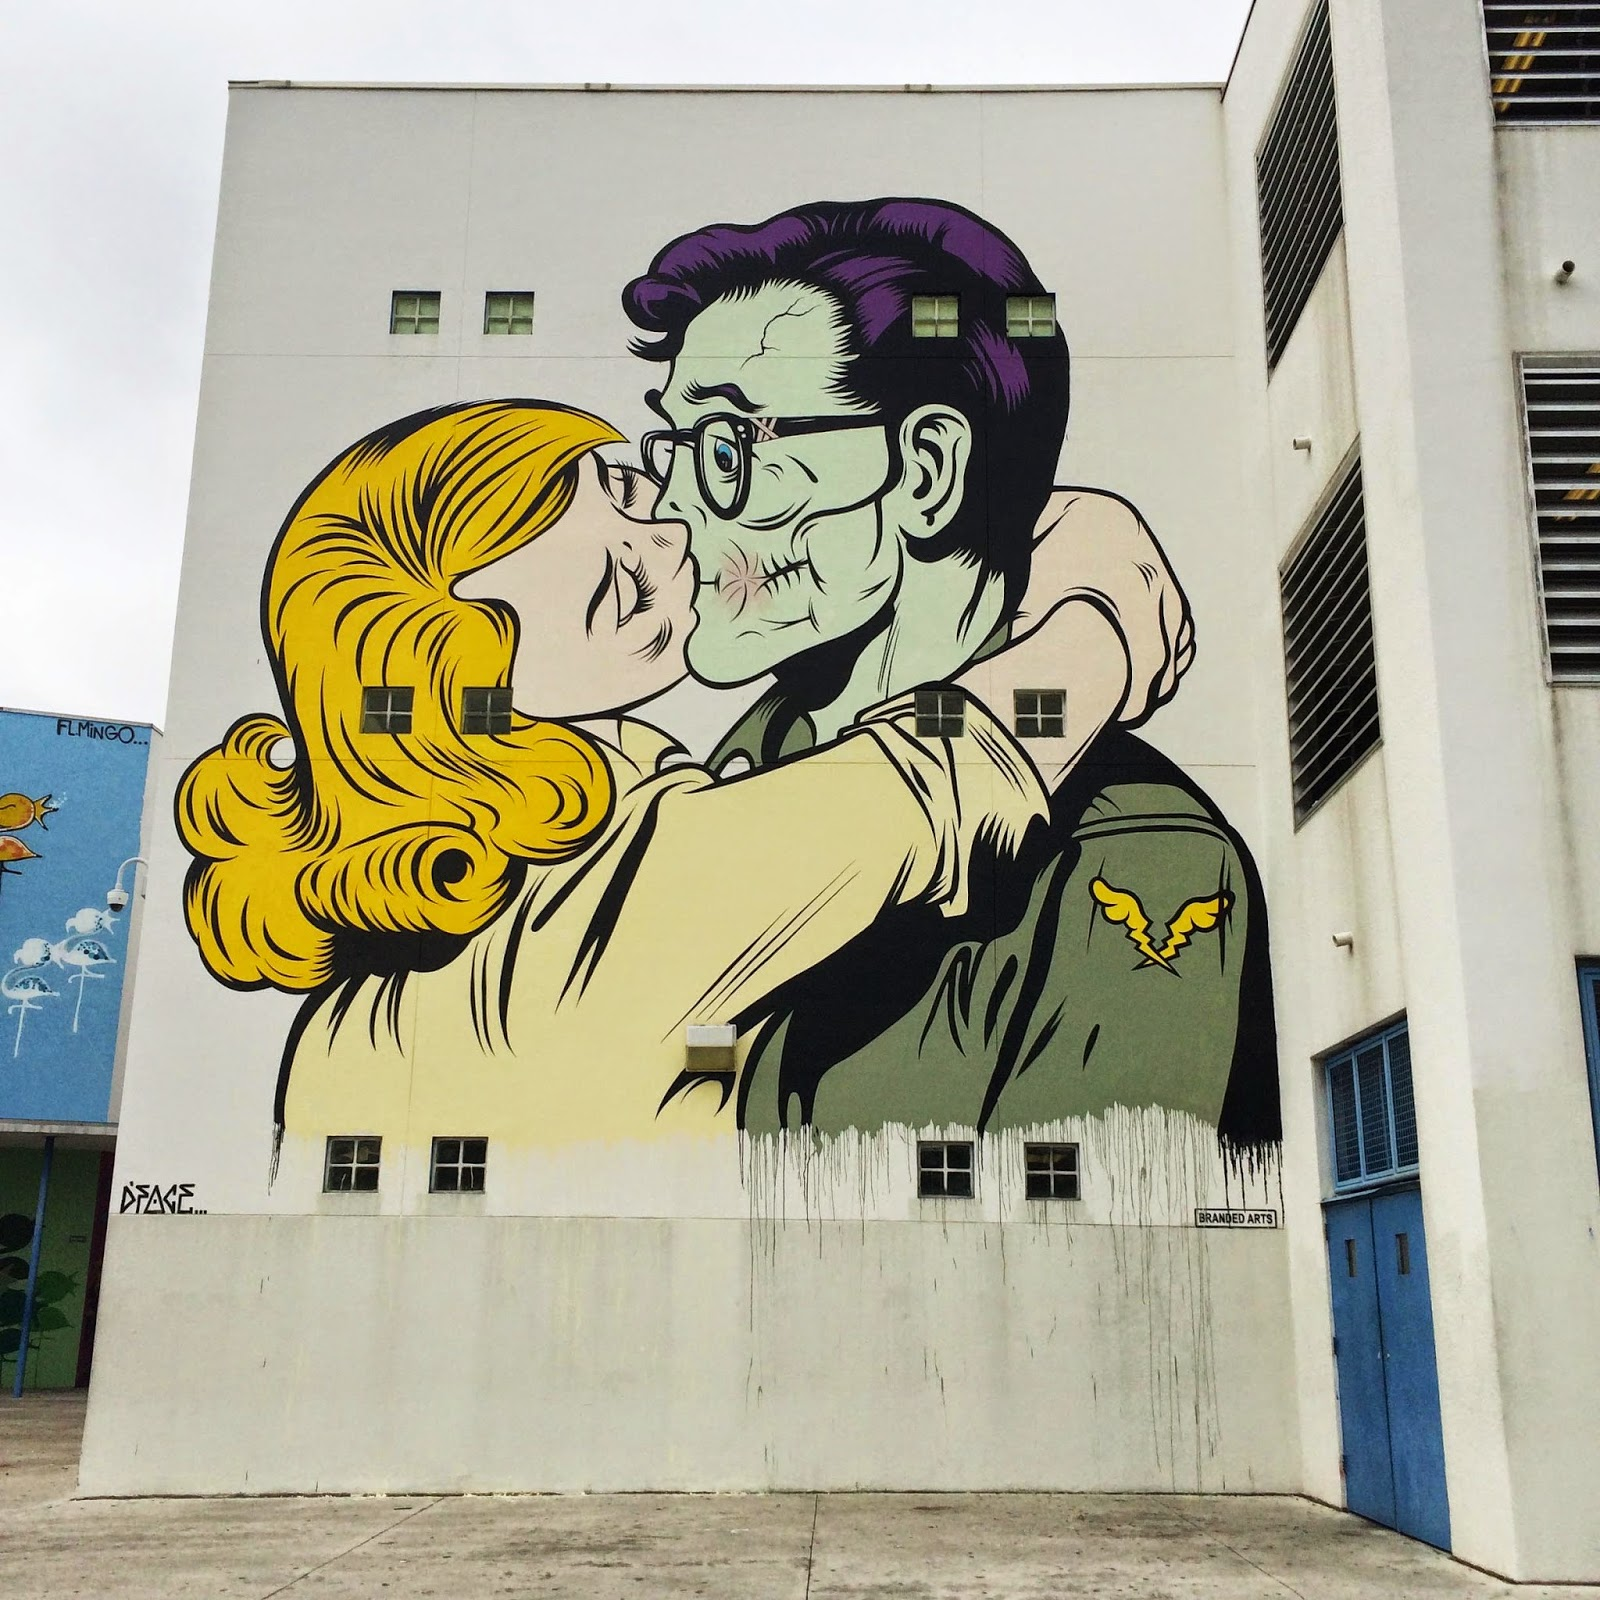 Our friend Dface is still in Wynwood, Miami for Art Basel 2014 where he just finished working on this new piece for Branded Arts and The Raw Project.